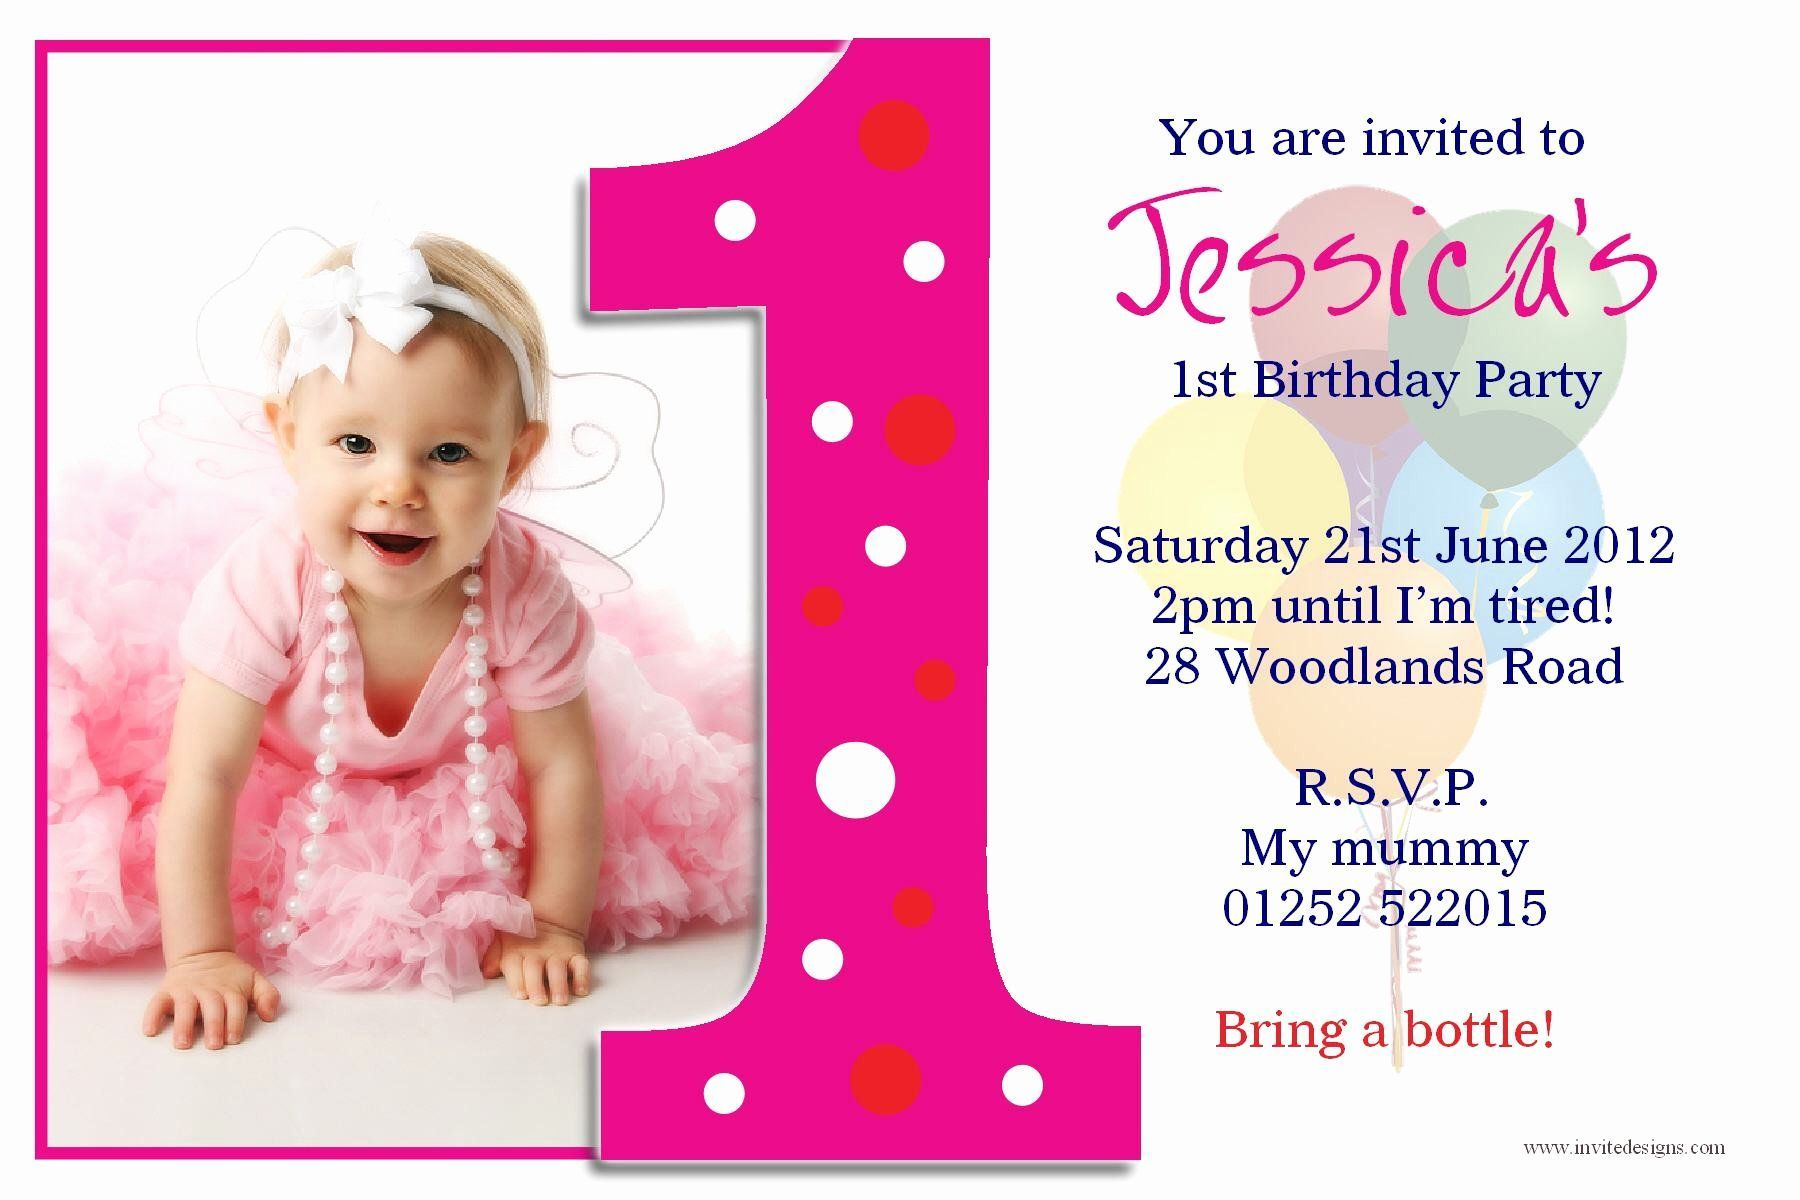 Birthday Invitation Card Template Unique Birthday Invitation Card Birt Photo Birthday Invitations 1st Birthday Invitations Girl First Birthday Invitation Cards